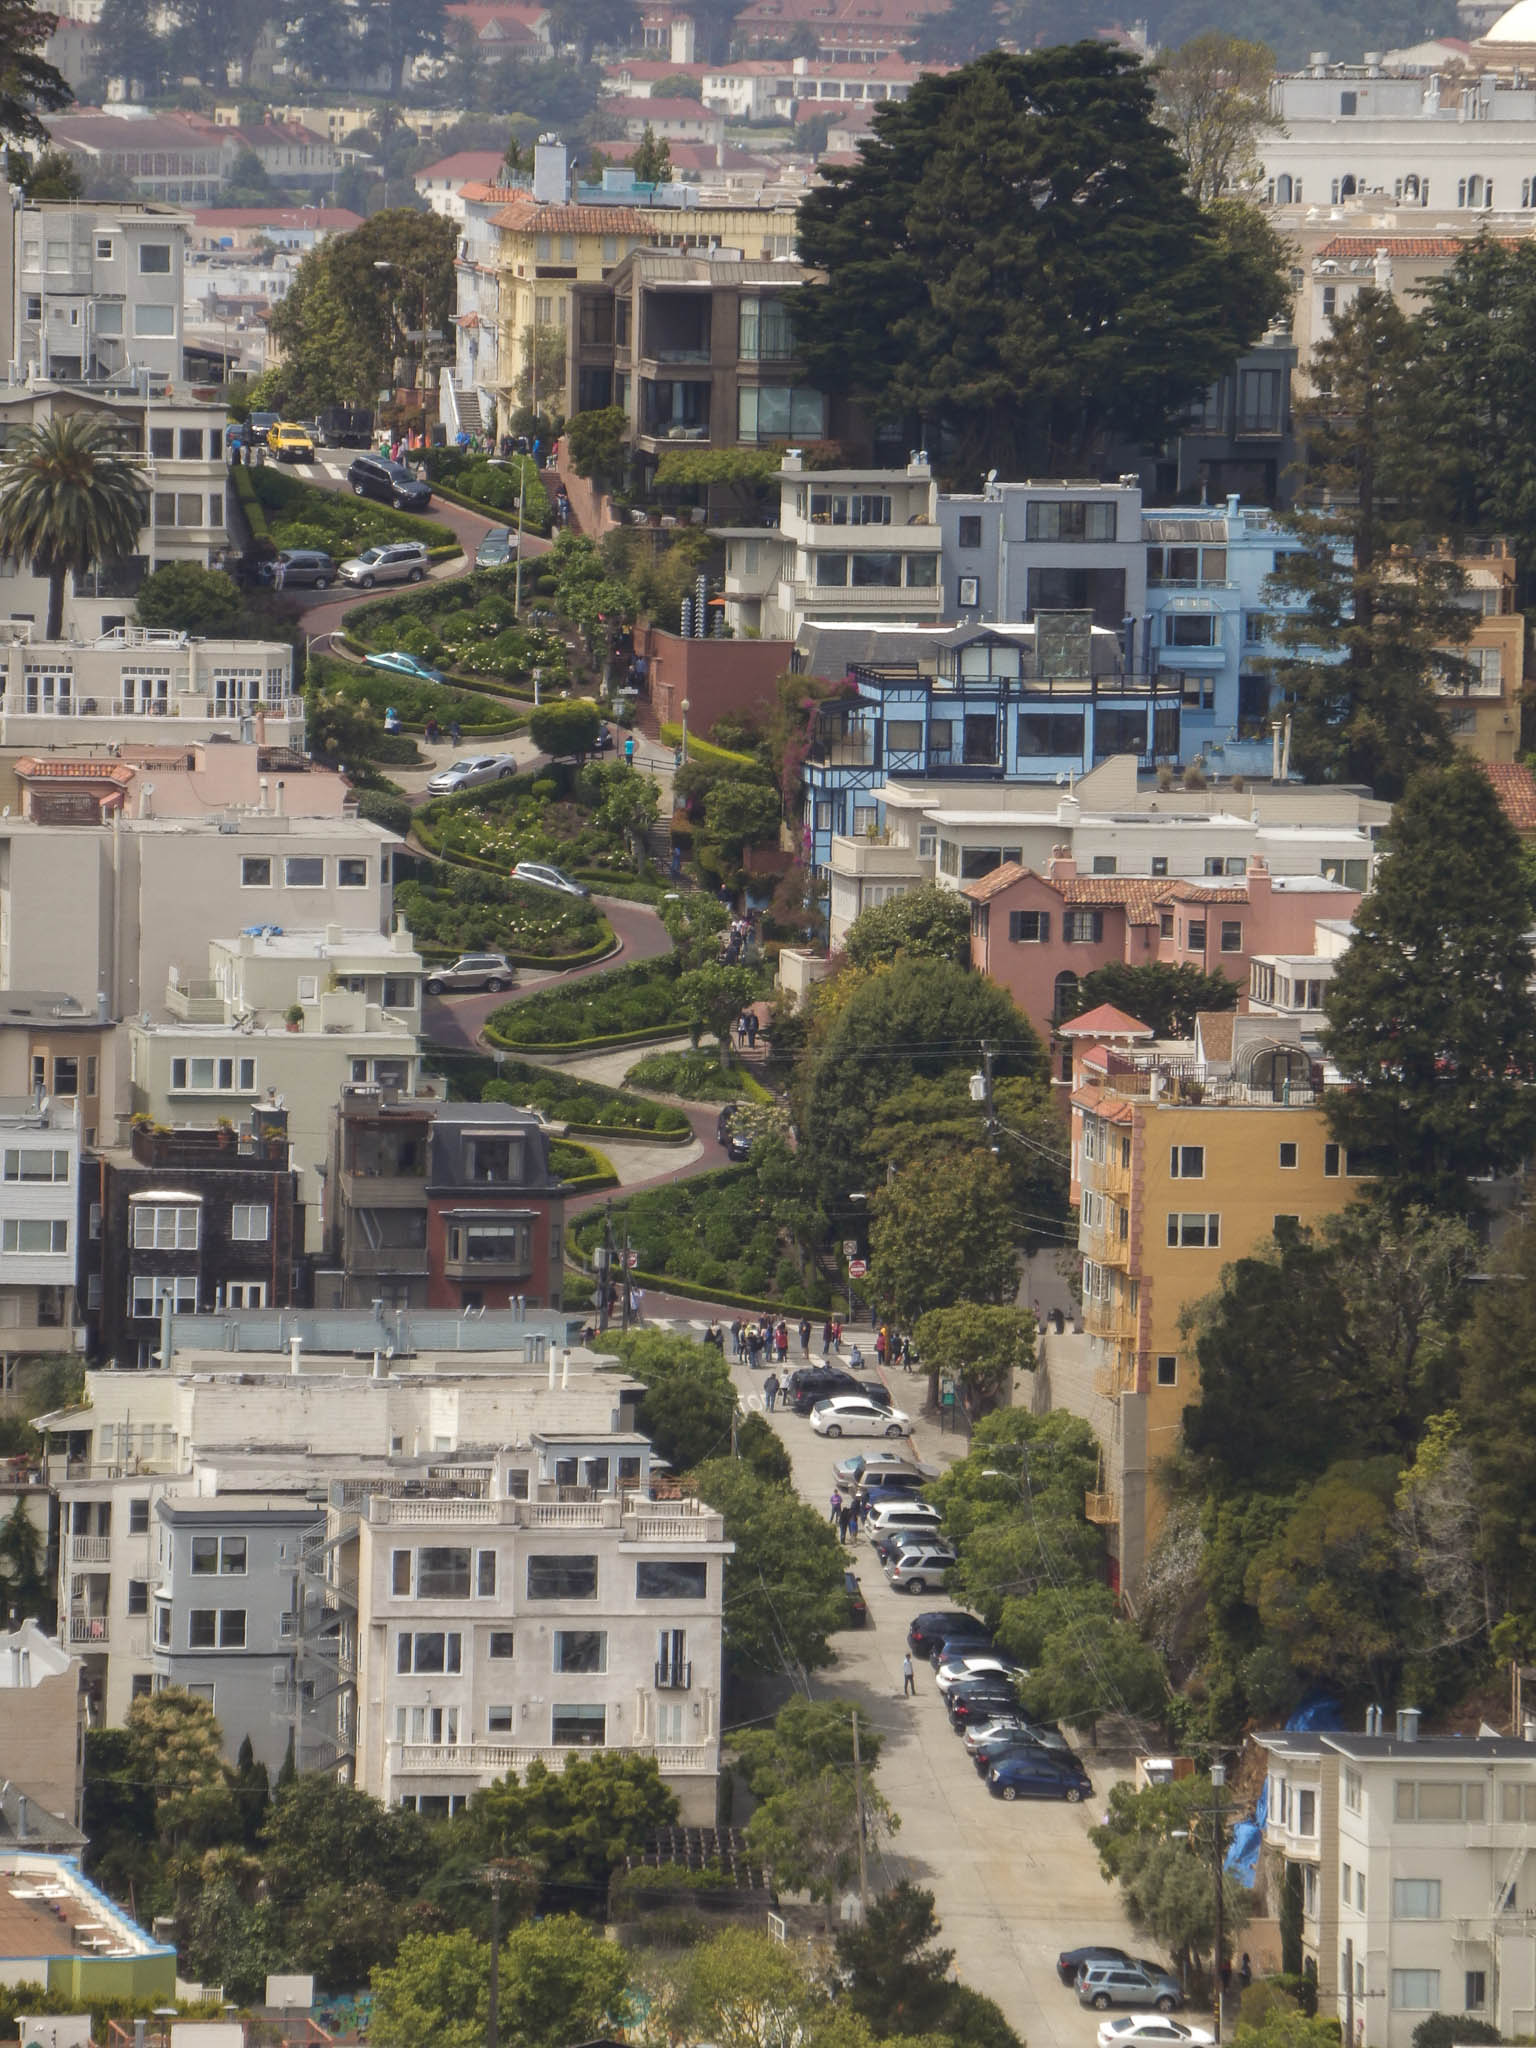 Lombard Street as seen from Coit tower